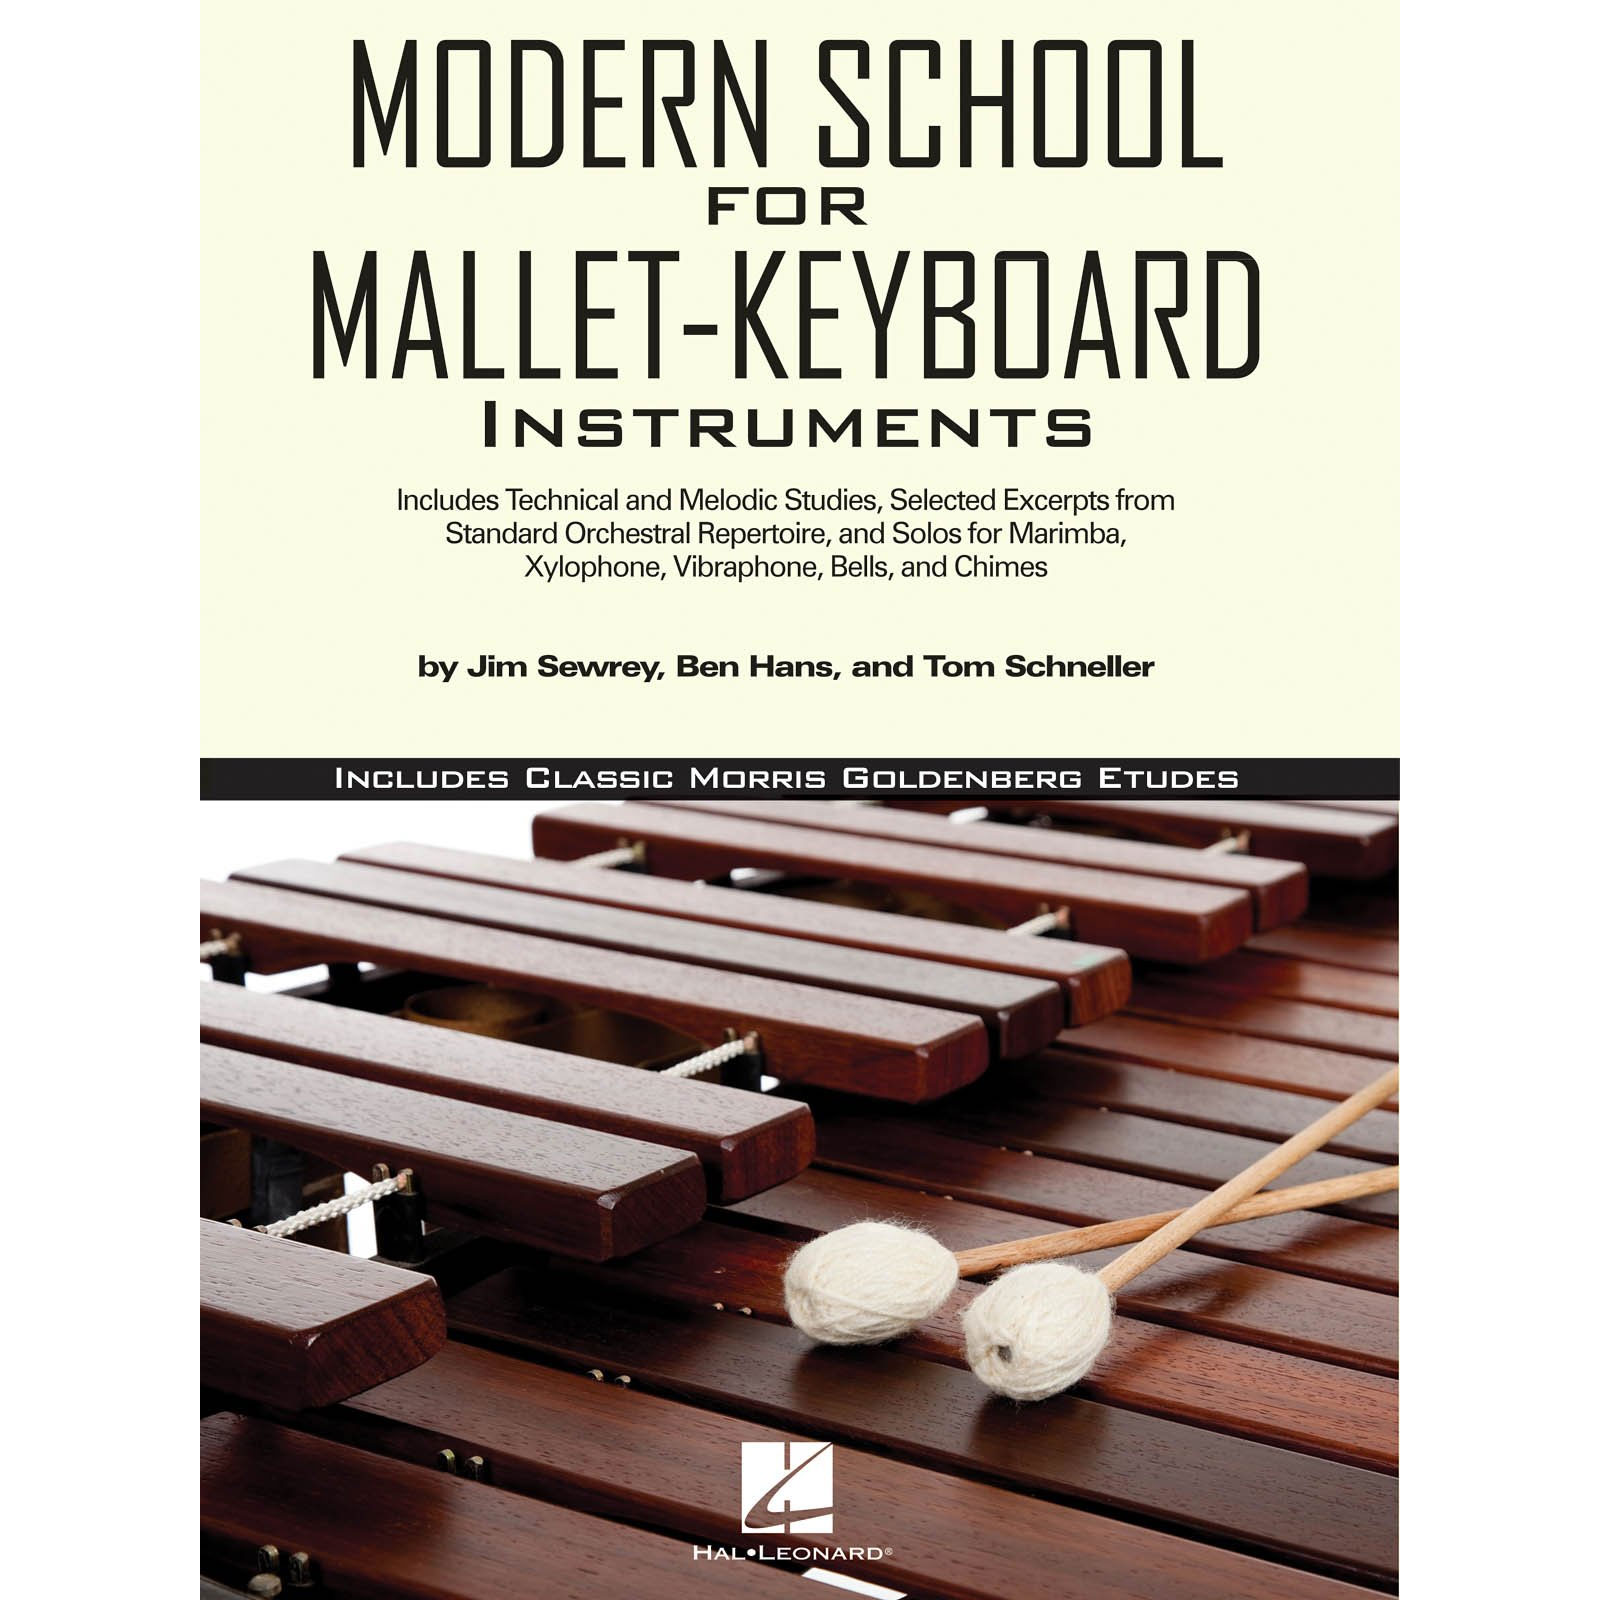 Modern School for Mallet-Keyboard Instruments by Hans, Sewrey, & Schneller